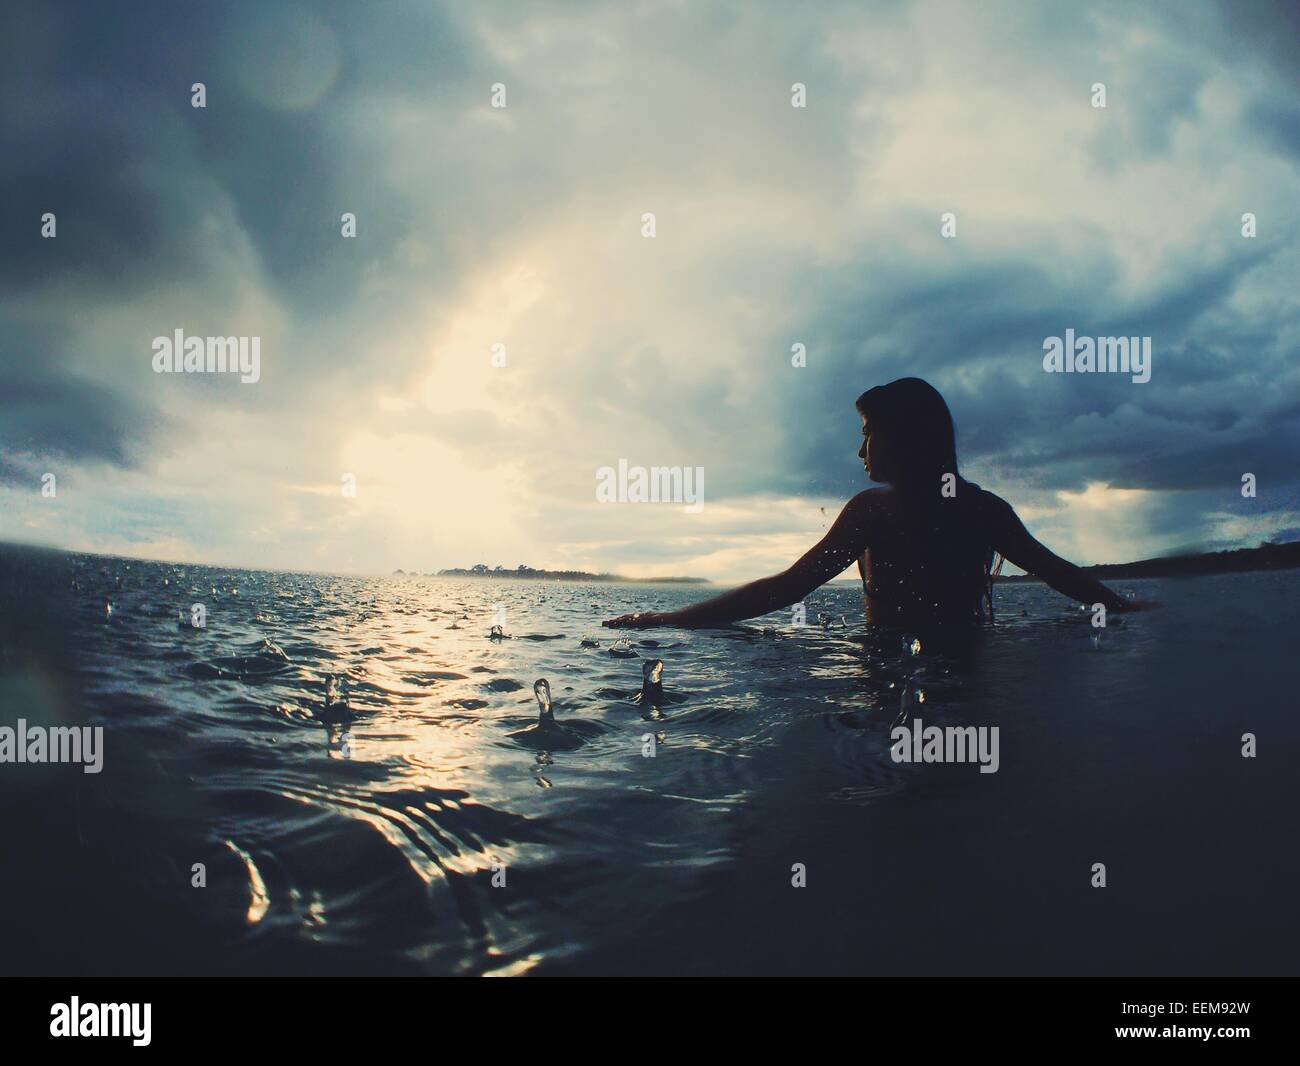 Woman in sea in rain - Stock Image